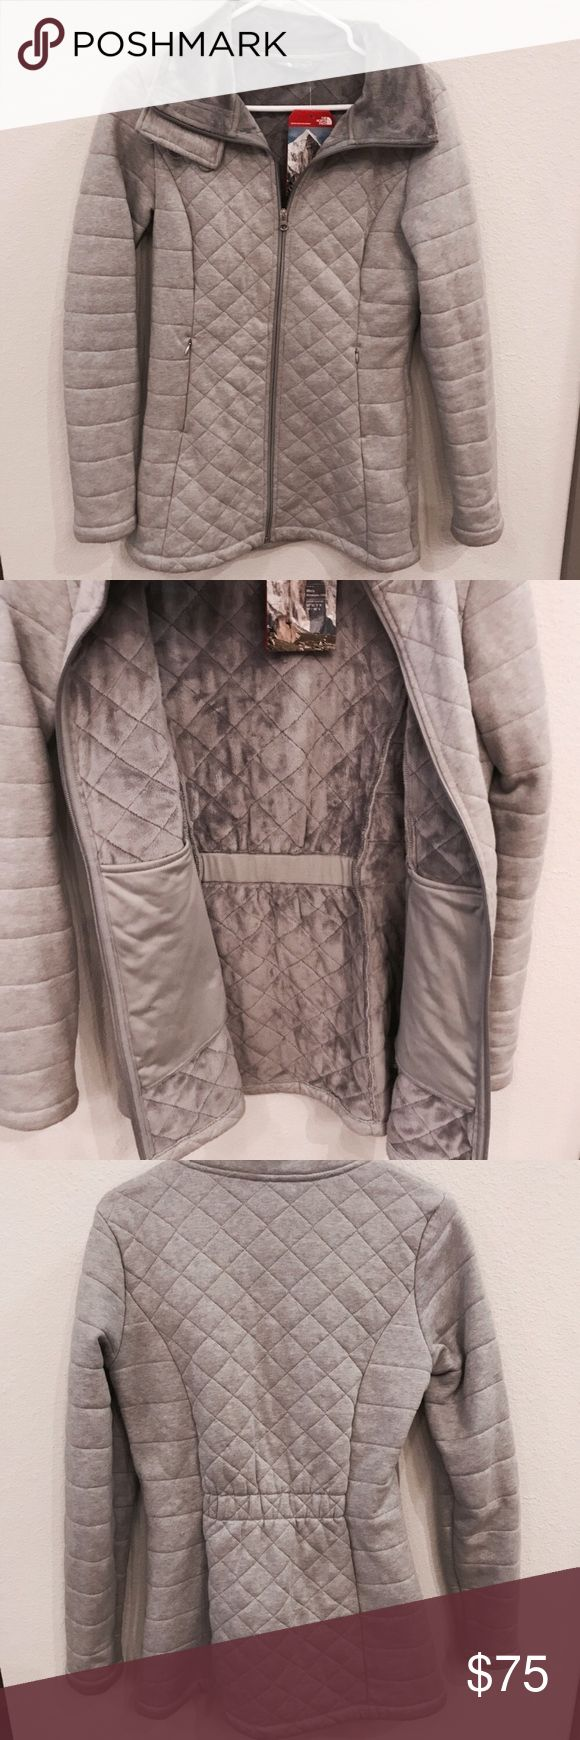 THE NORTH FACE Grey Caroluna Jacket NWT THE NORTH FACE Grey Caroluna Jacket NWT. Super warm with incredibly soft inner lining. Two zip closure pockets. Still retails on Nordstrom website for 120! The North Face Jackets & Coats